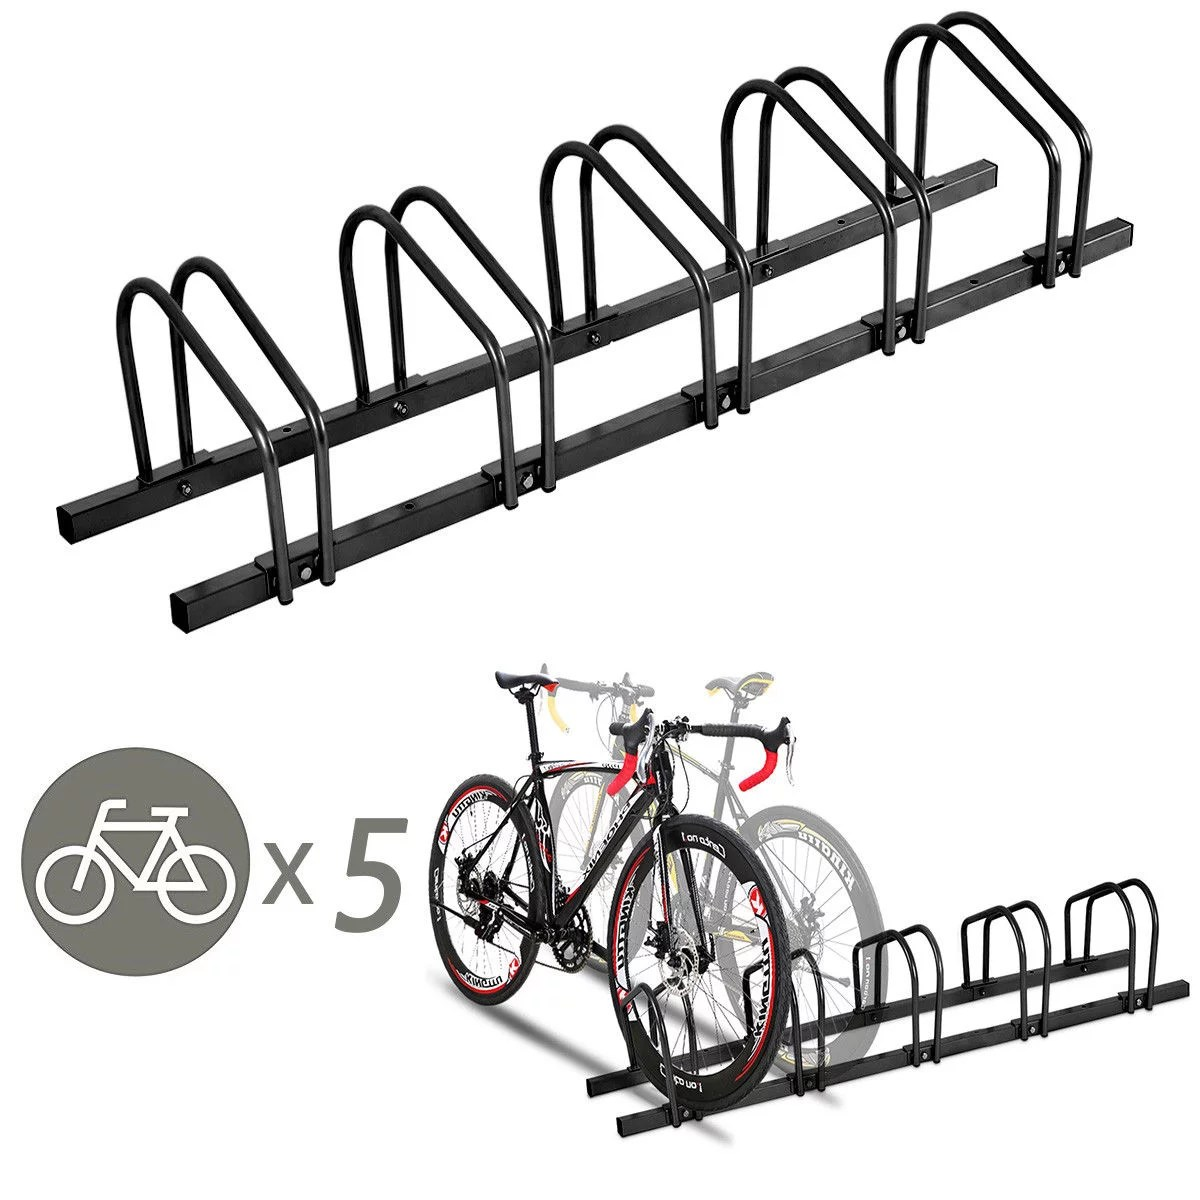 Parking Garage Bike Rack Gymax 5 Bike Bicycle Stand Parking Garage Storage Cycling Rack Black